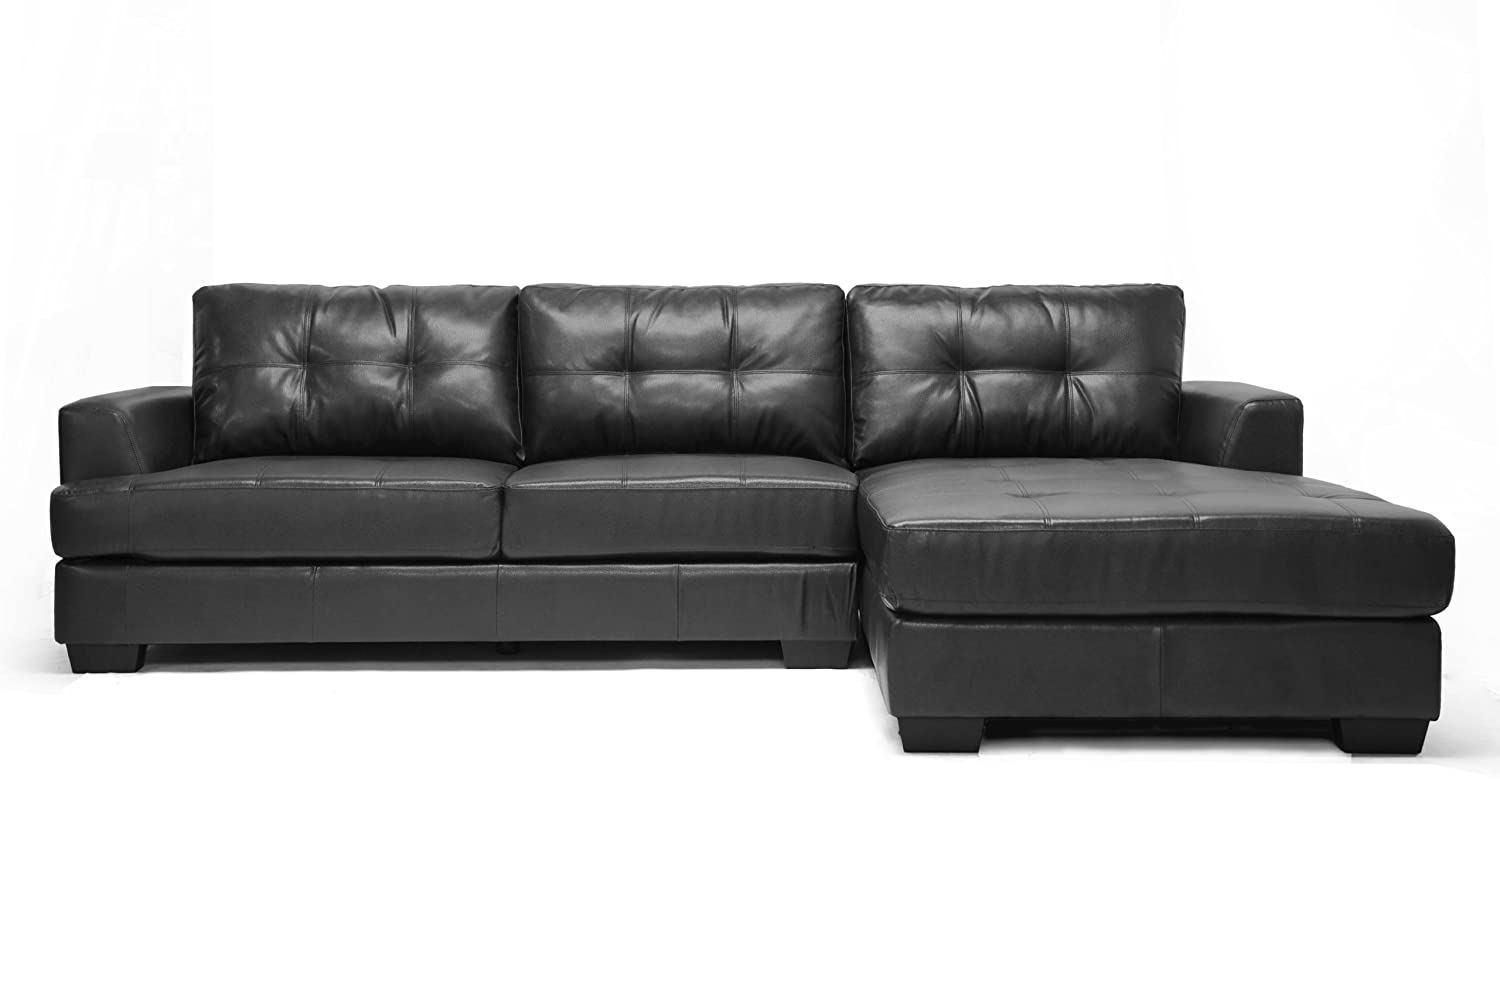 pin rest classy and in also luxurious tufted coffee arm black recliner table with color leather chaise sofa sectional